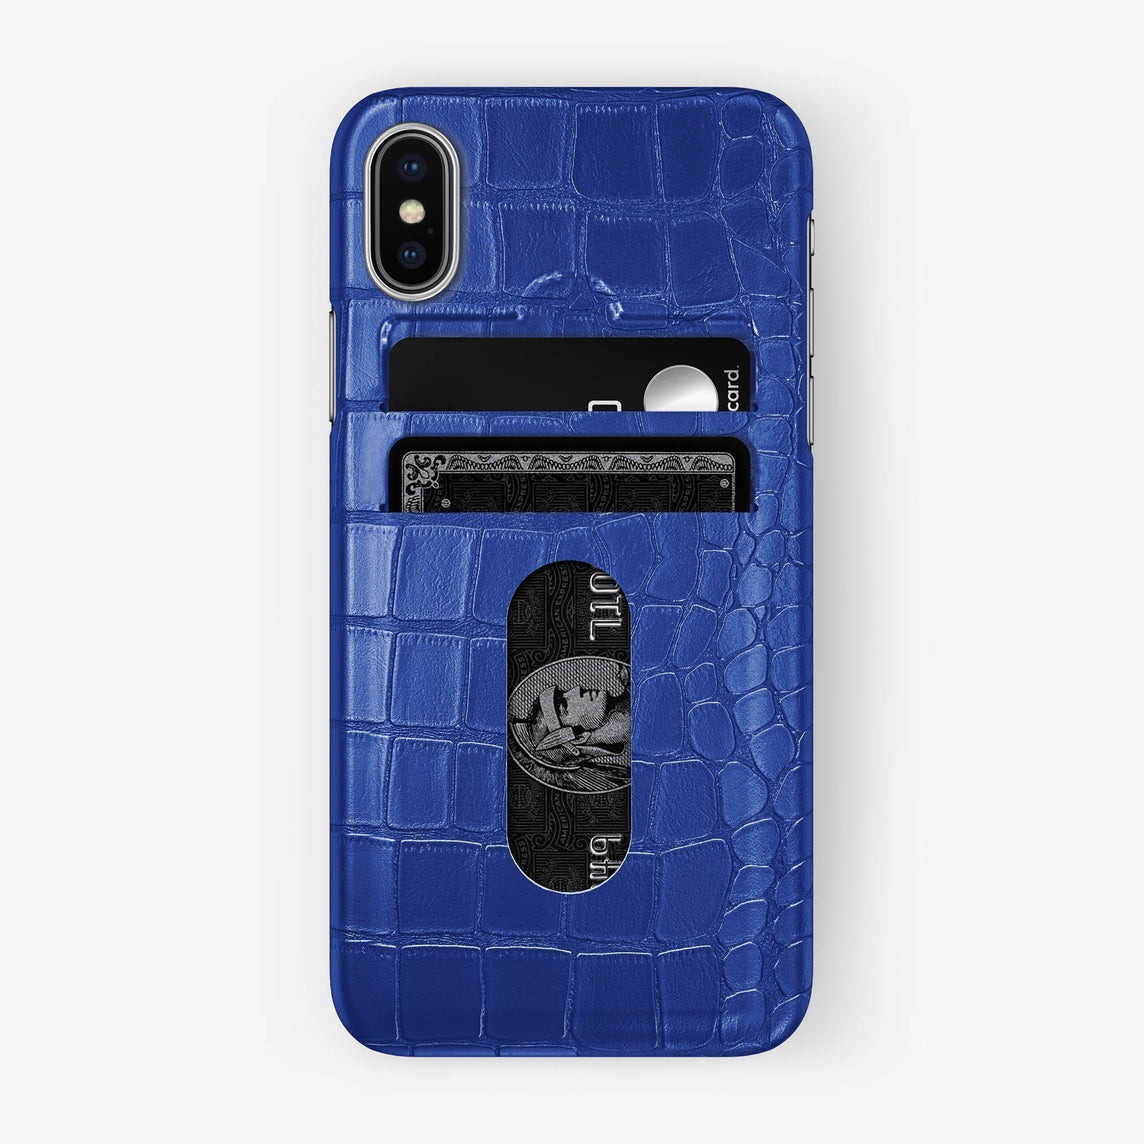 Alligator Card Holder Case iPhone Xs Max | Peony Blue - Stainless Steel